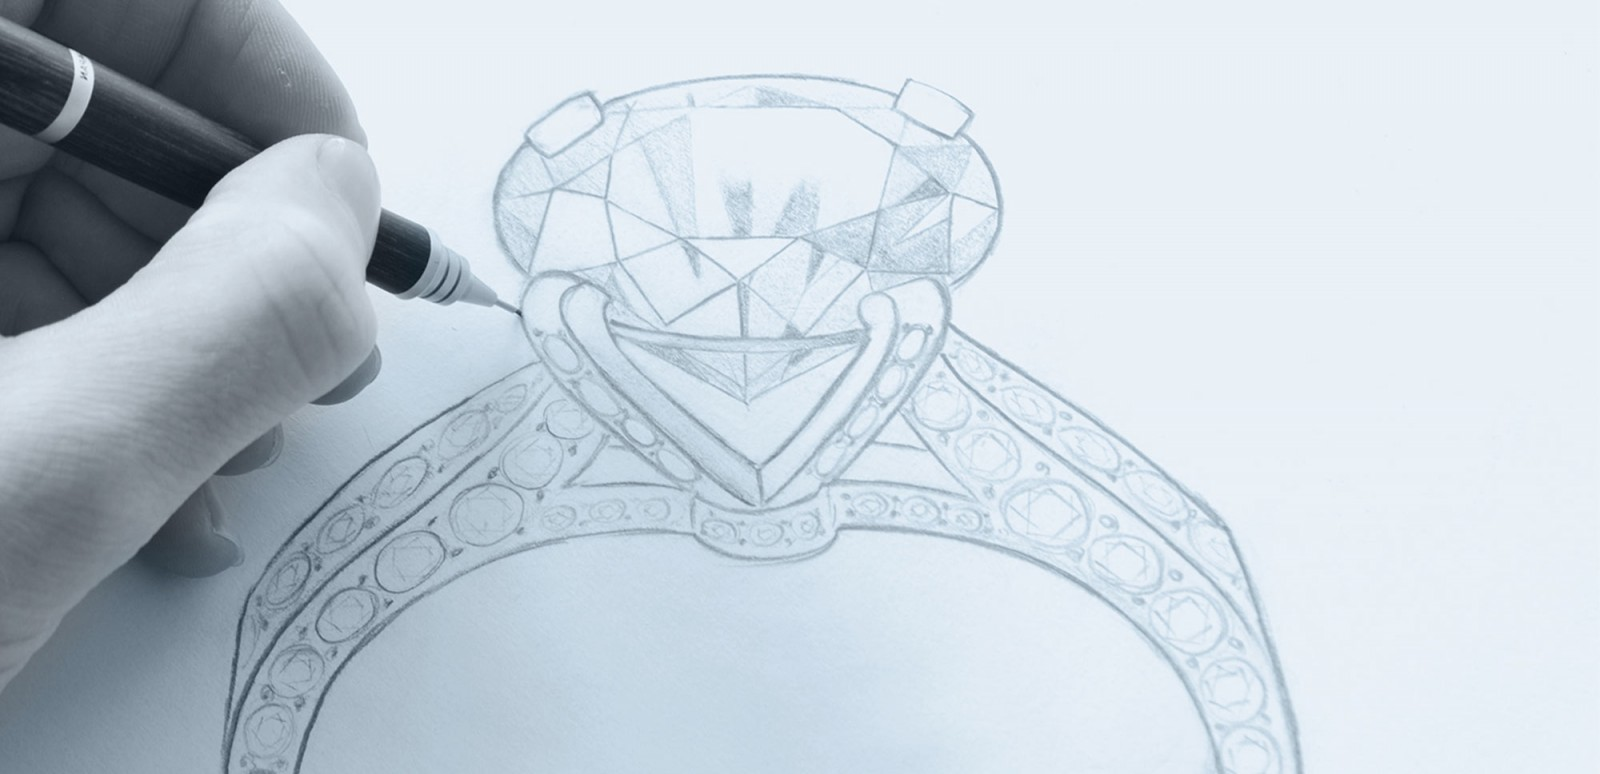 Link to The Process. Custom jewellery designer Julian Bartrom hand drawing a custom engagement ring design